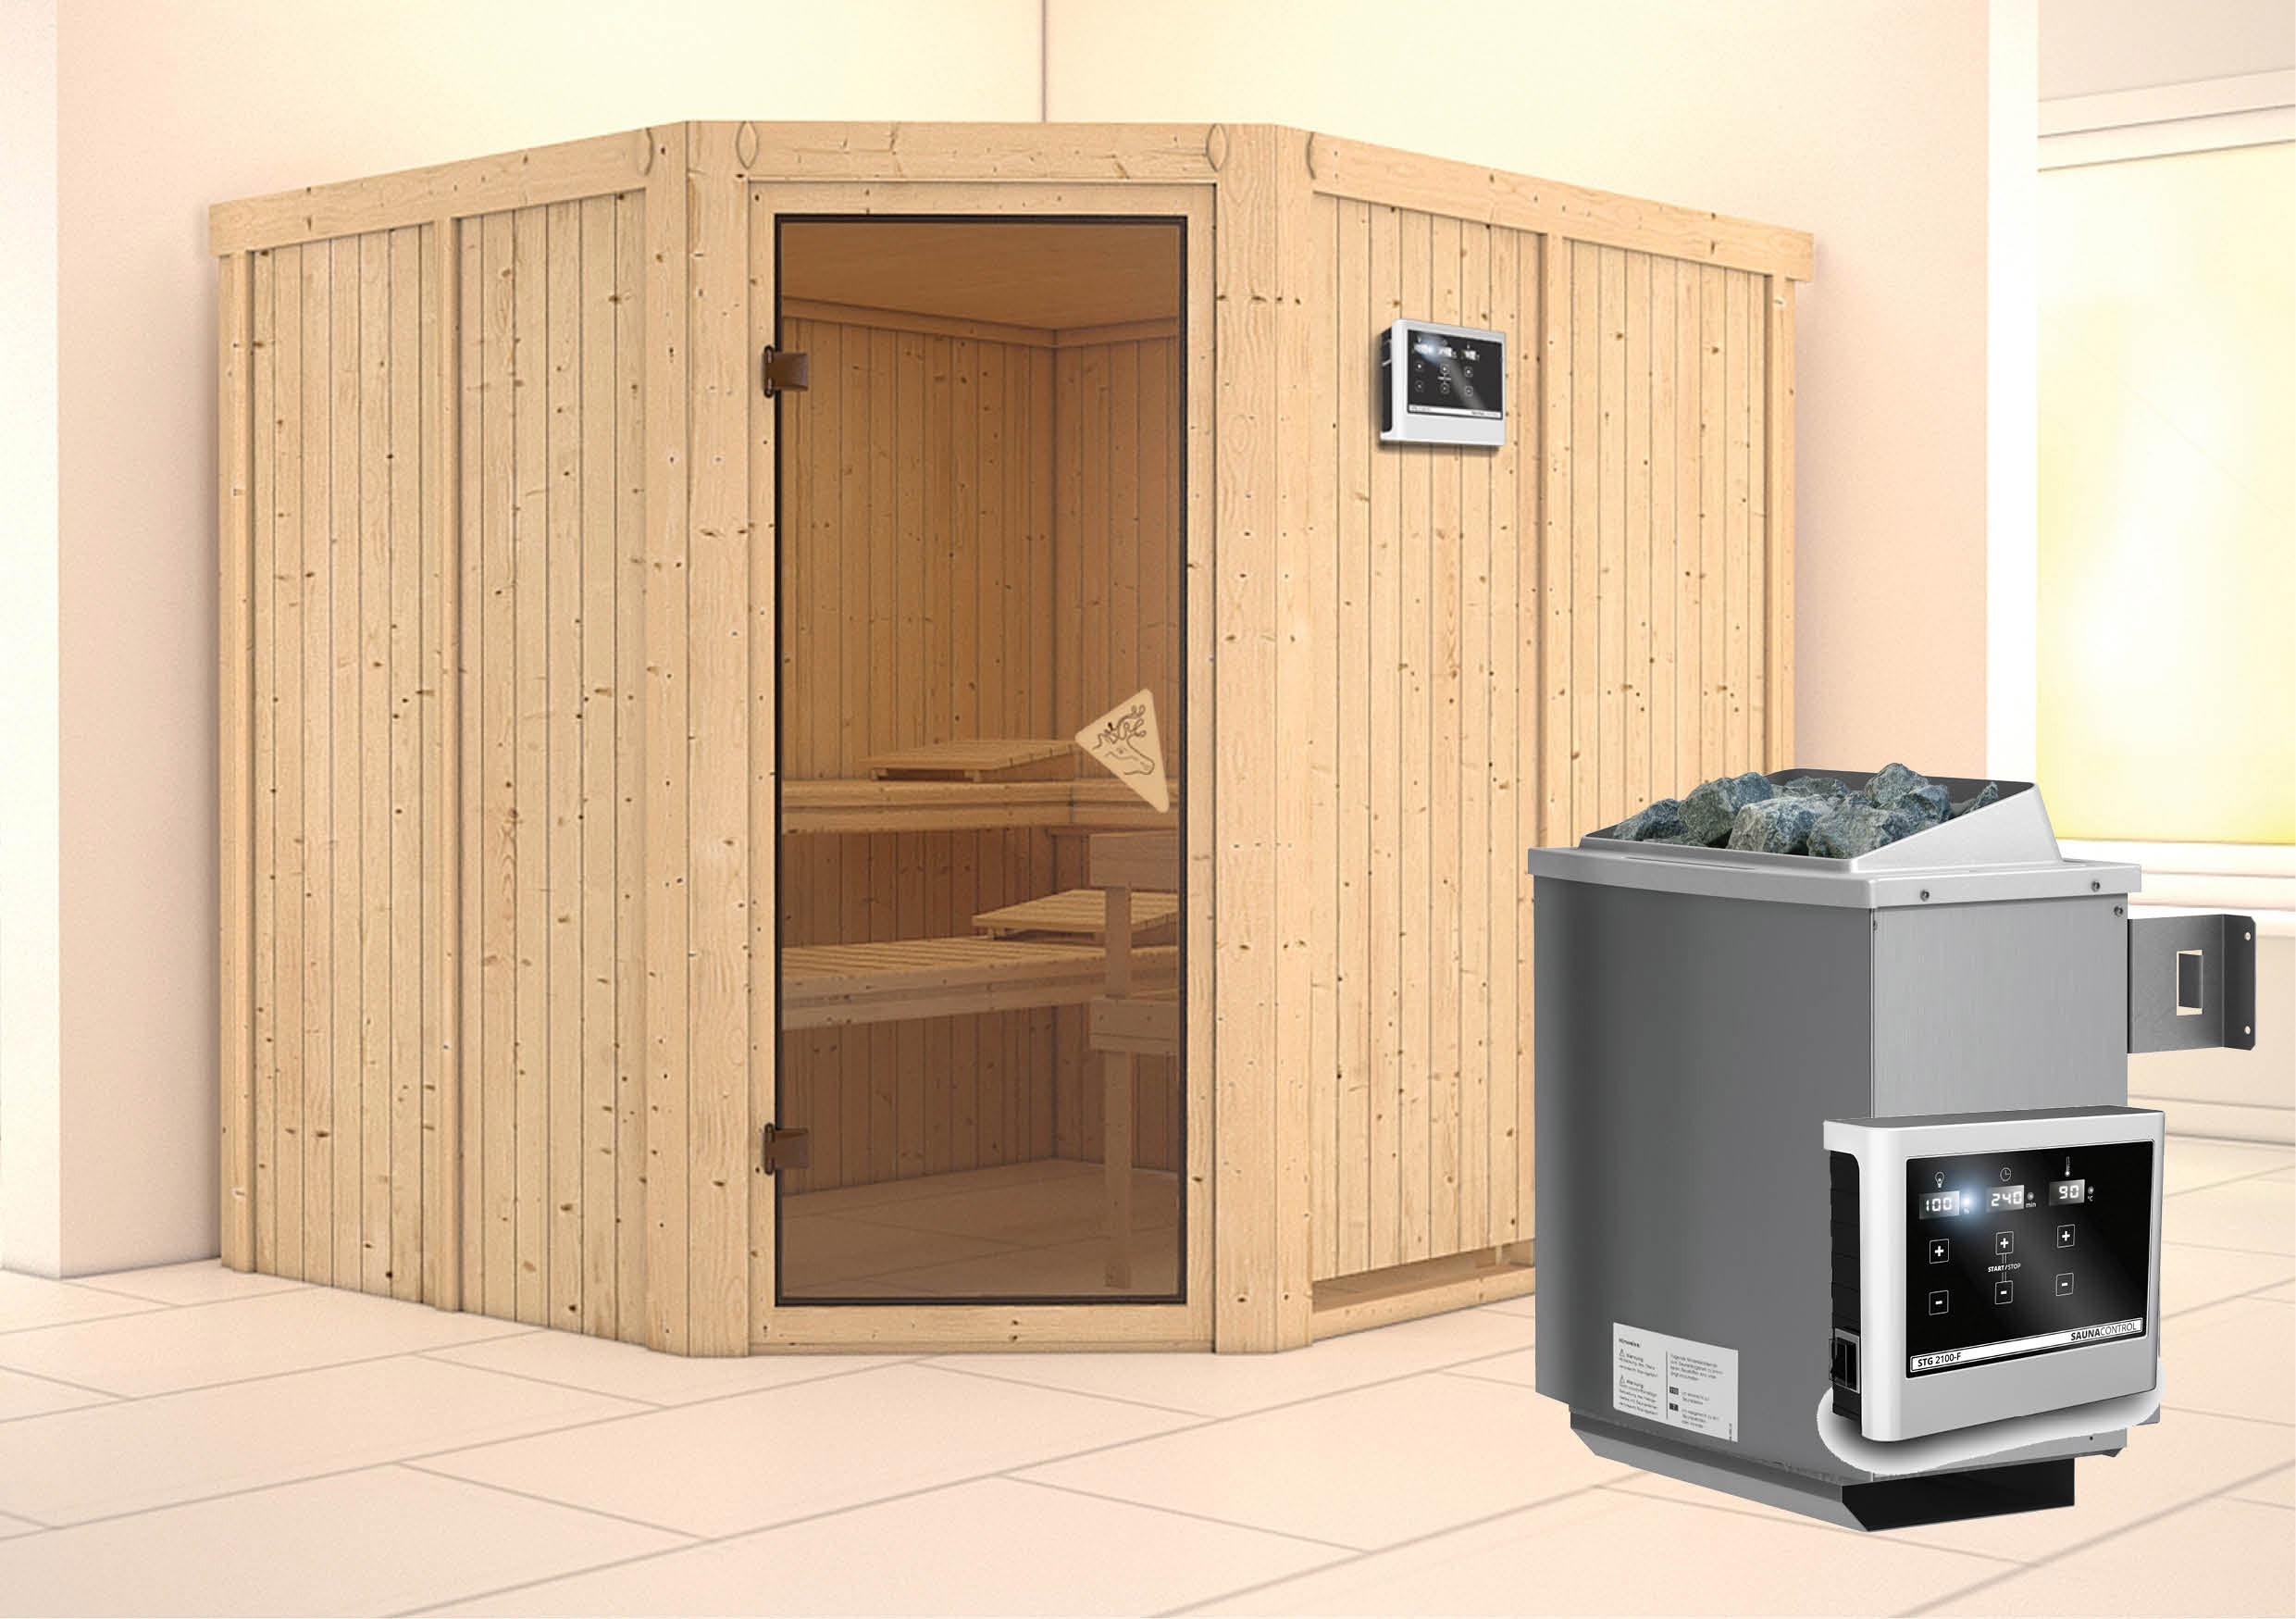 karibu sauna malin 68mm mit ofen 9kw extern classic t r bei. Black Bedroom Furniture Sets. Home Design Ideas